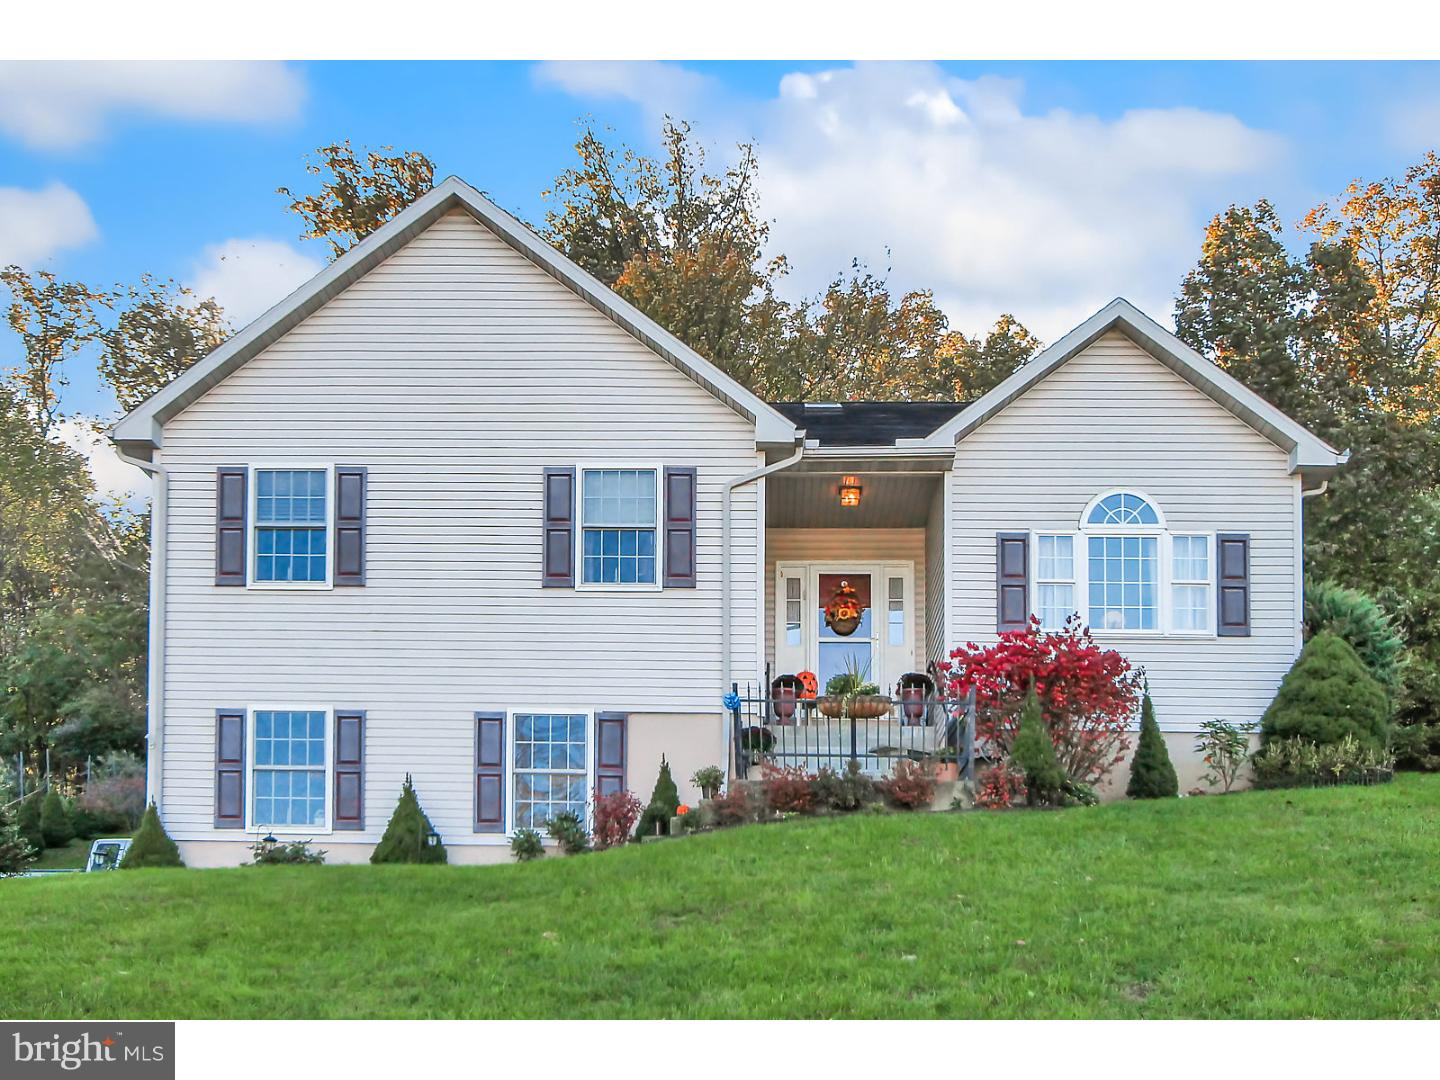 915 BEDFORD AVENUE, READING, PA 19607